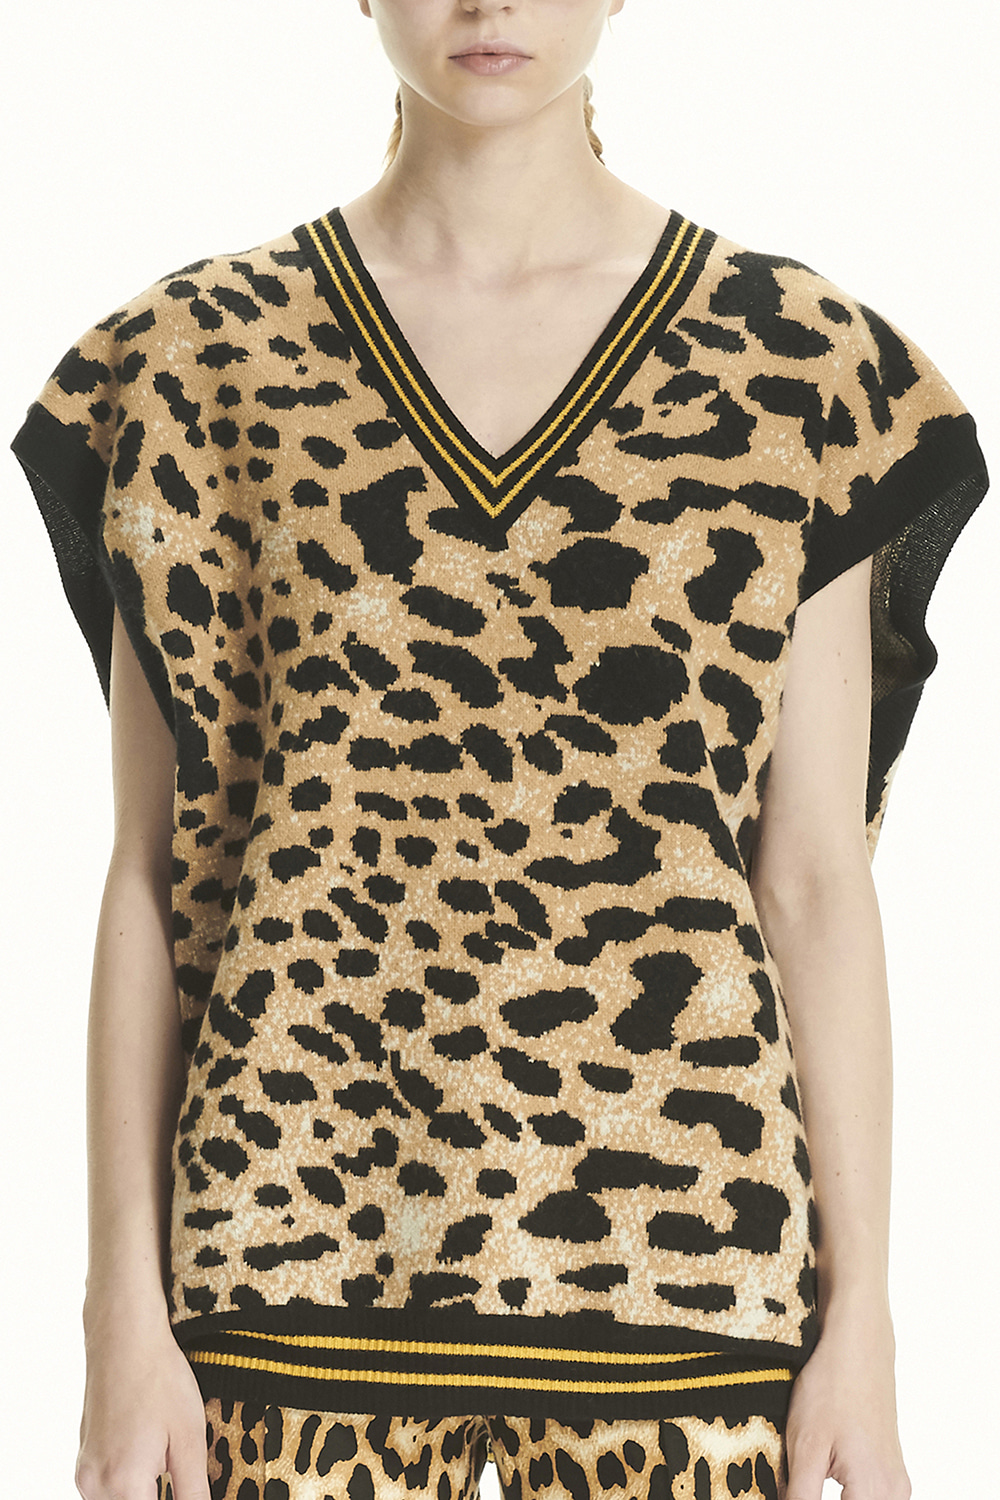 PS21 LEOPARD KNIT OVERSIZED VEST